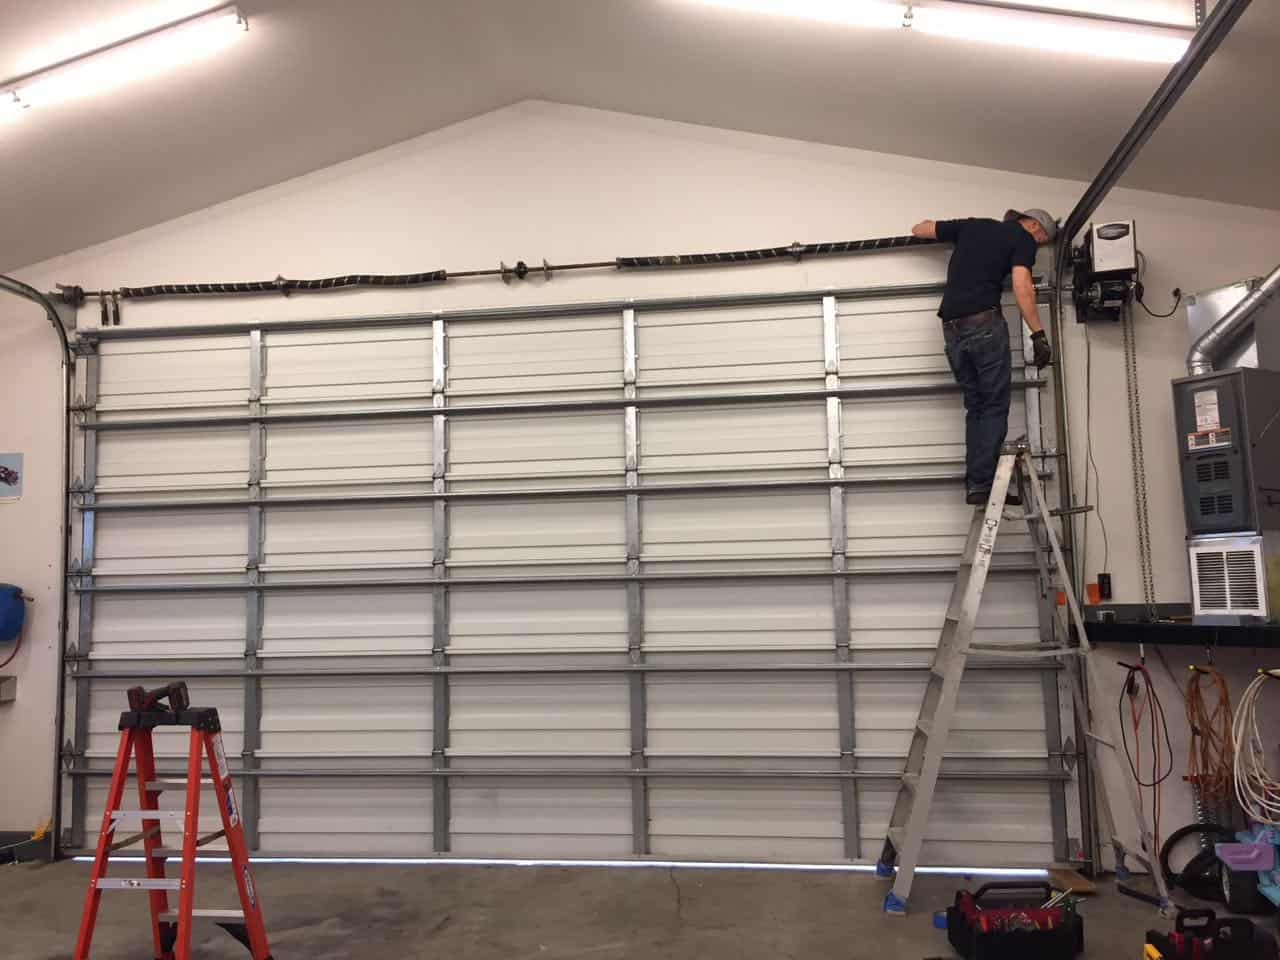 Commercial Garage Door Repair In Sammamish By Elite Garage & Gate